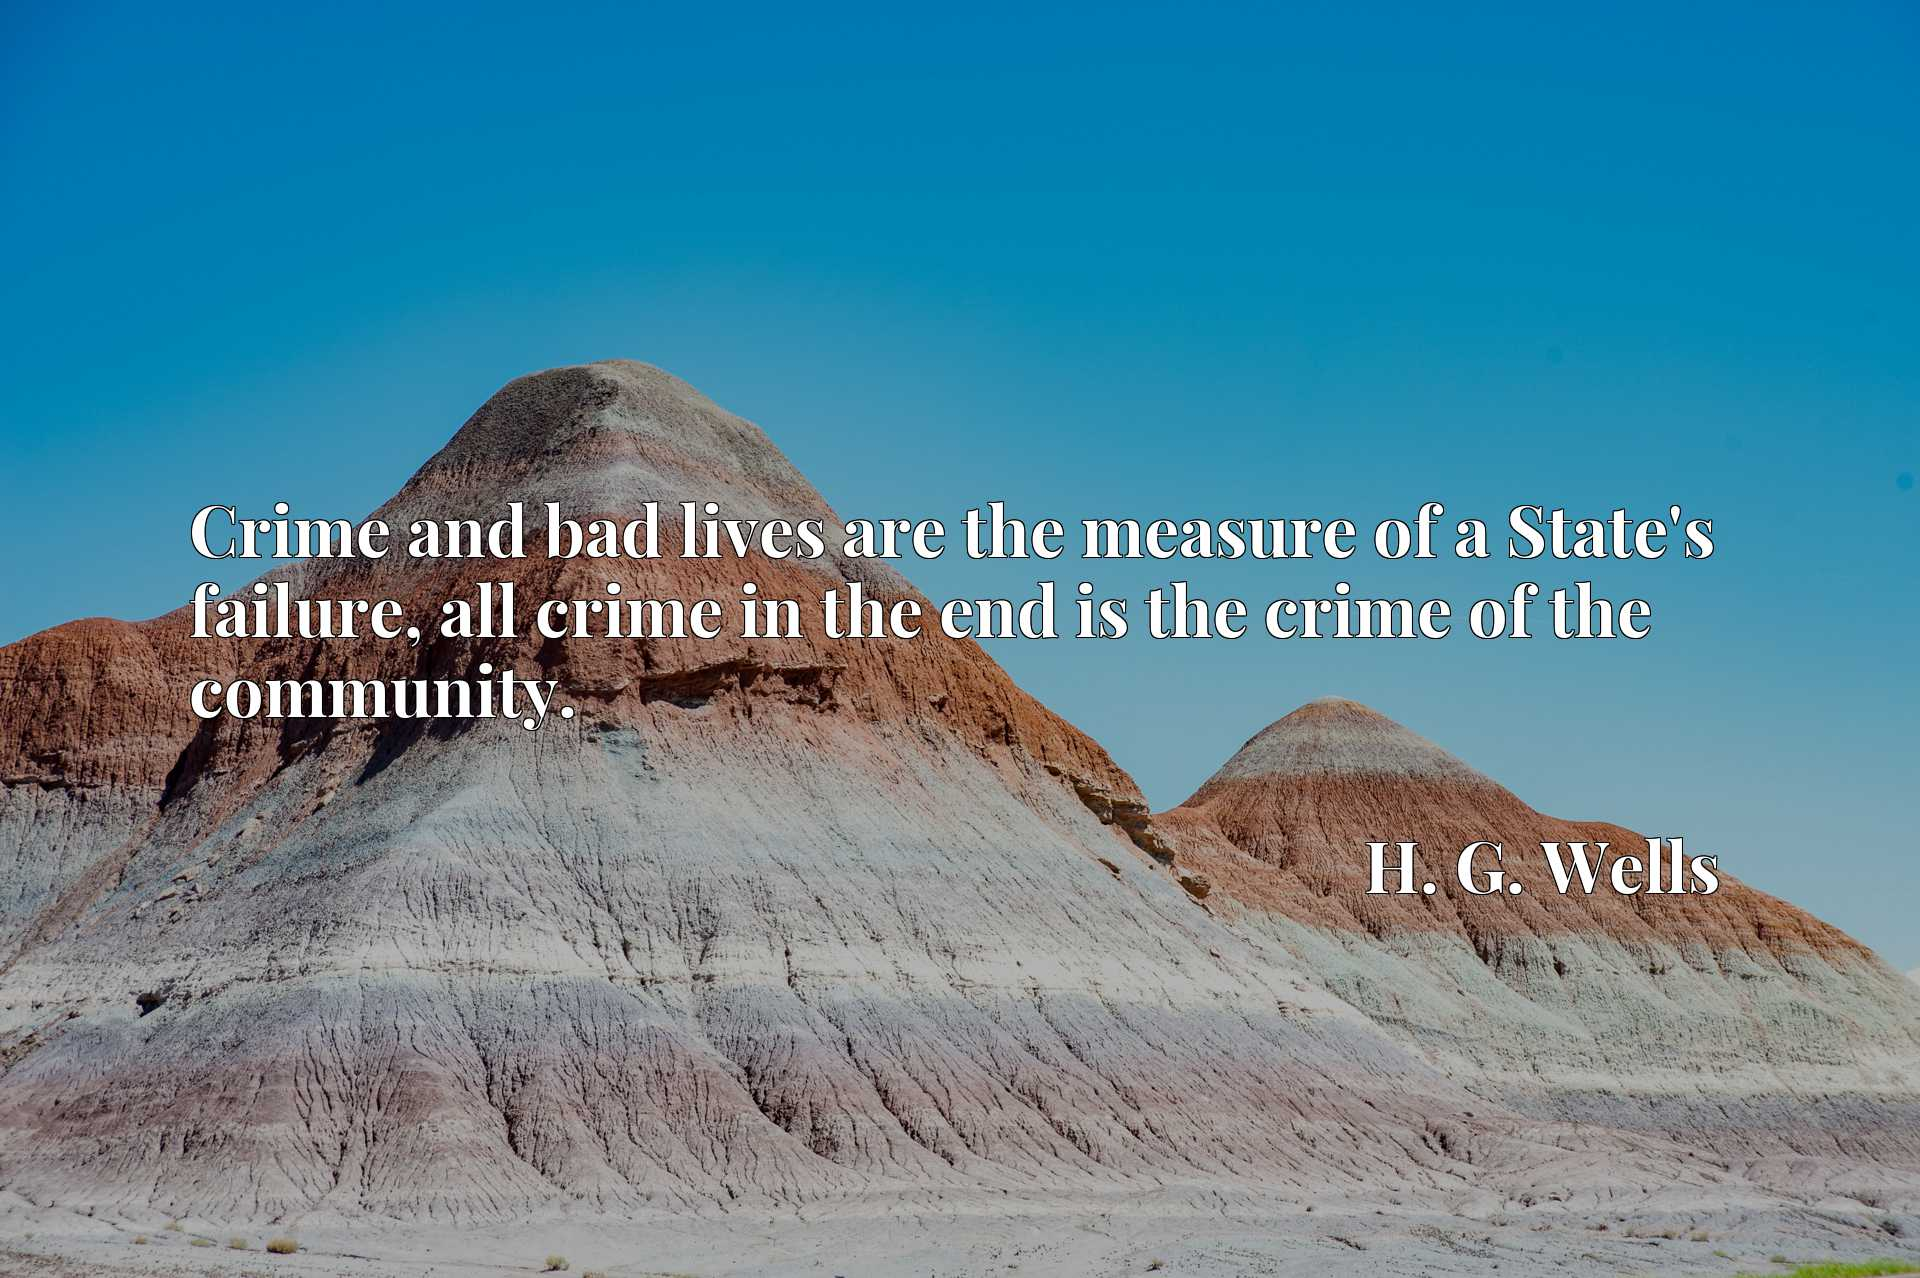 Crime and bad lives are the measure of a State's failure, all crime in the end is the crime of the community.